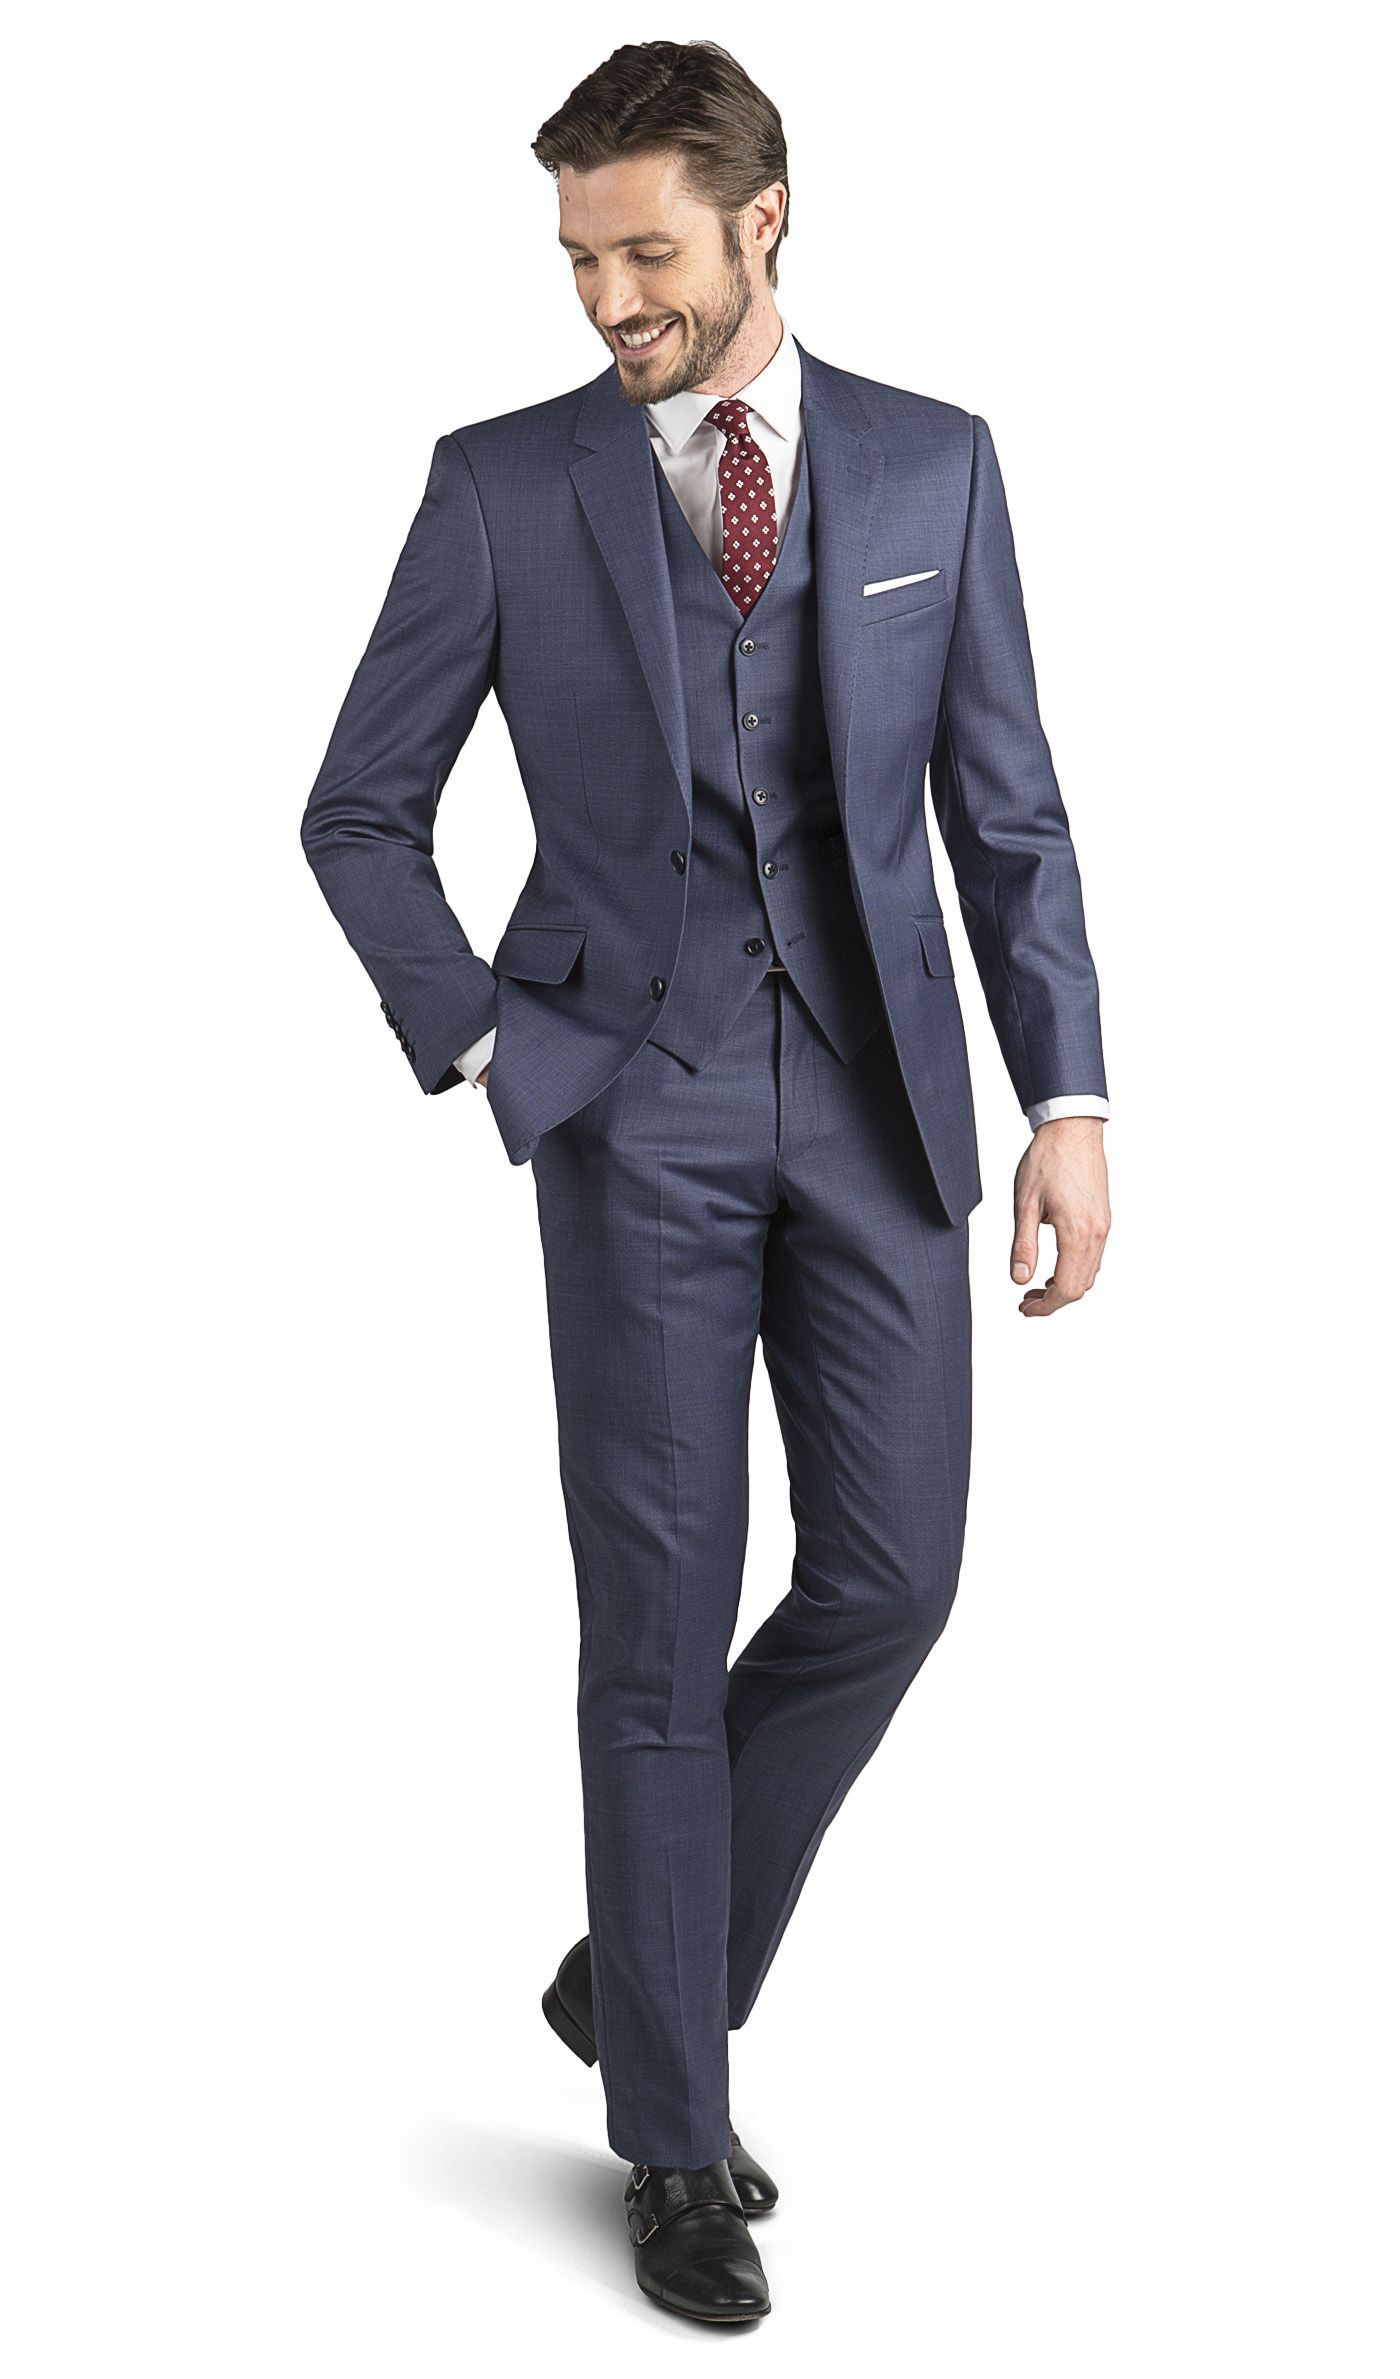 67d9452e791 Mills Blue Sharkskin 3 Piece Slim Fit Suit